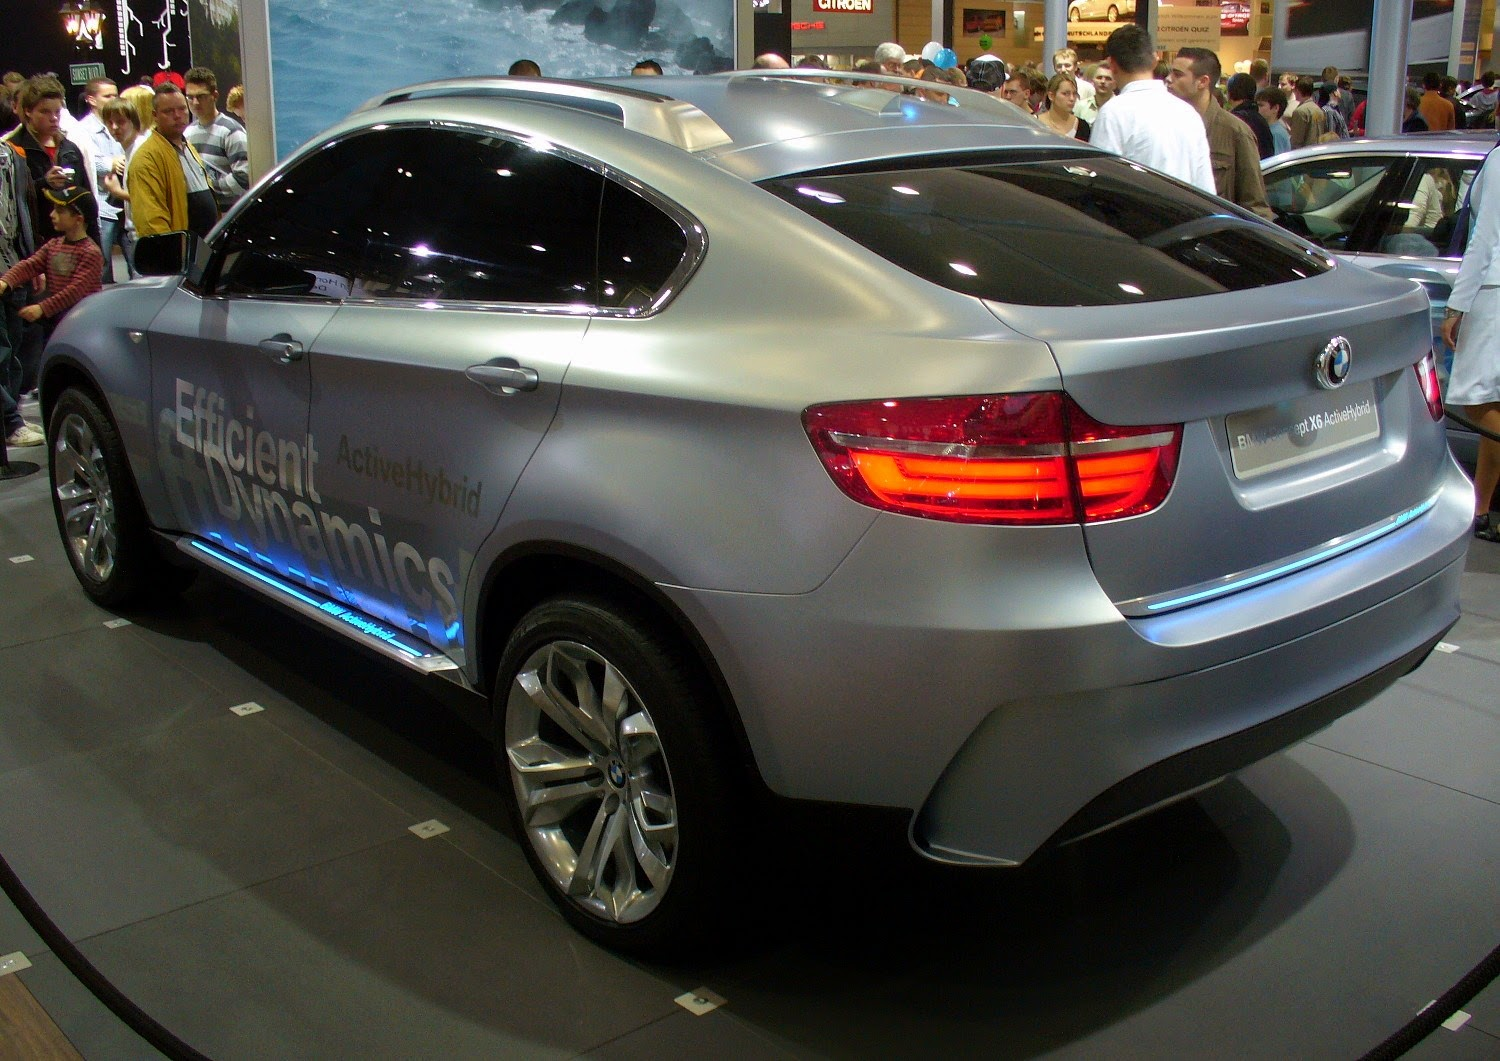 BMW Concept X6 ActiveHybrid Full HD Wallpaper